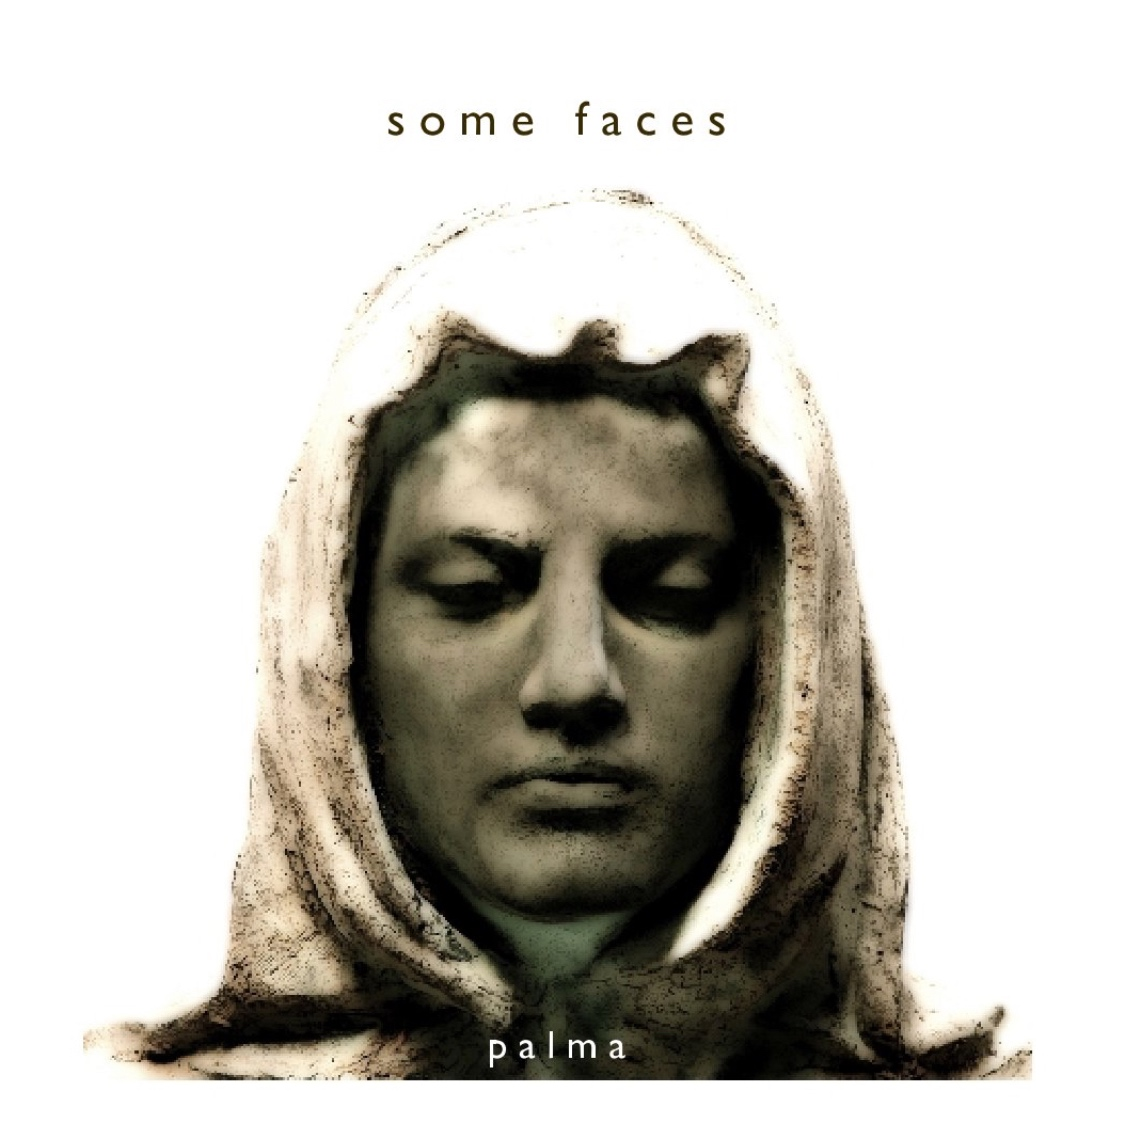 "some faces - italian memorial sculpture | face details7"" x 7"" square formatpreview and purchase at blurb.com"